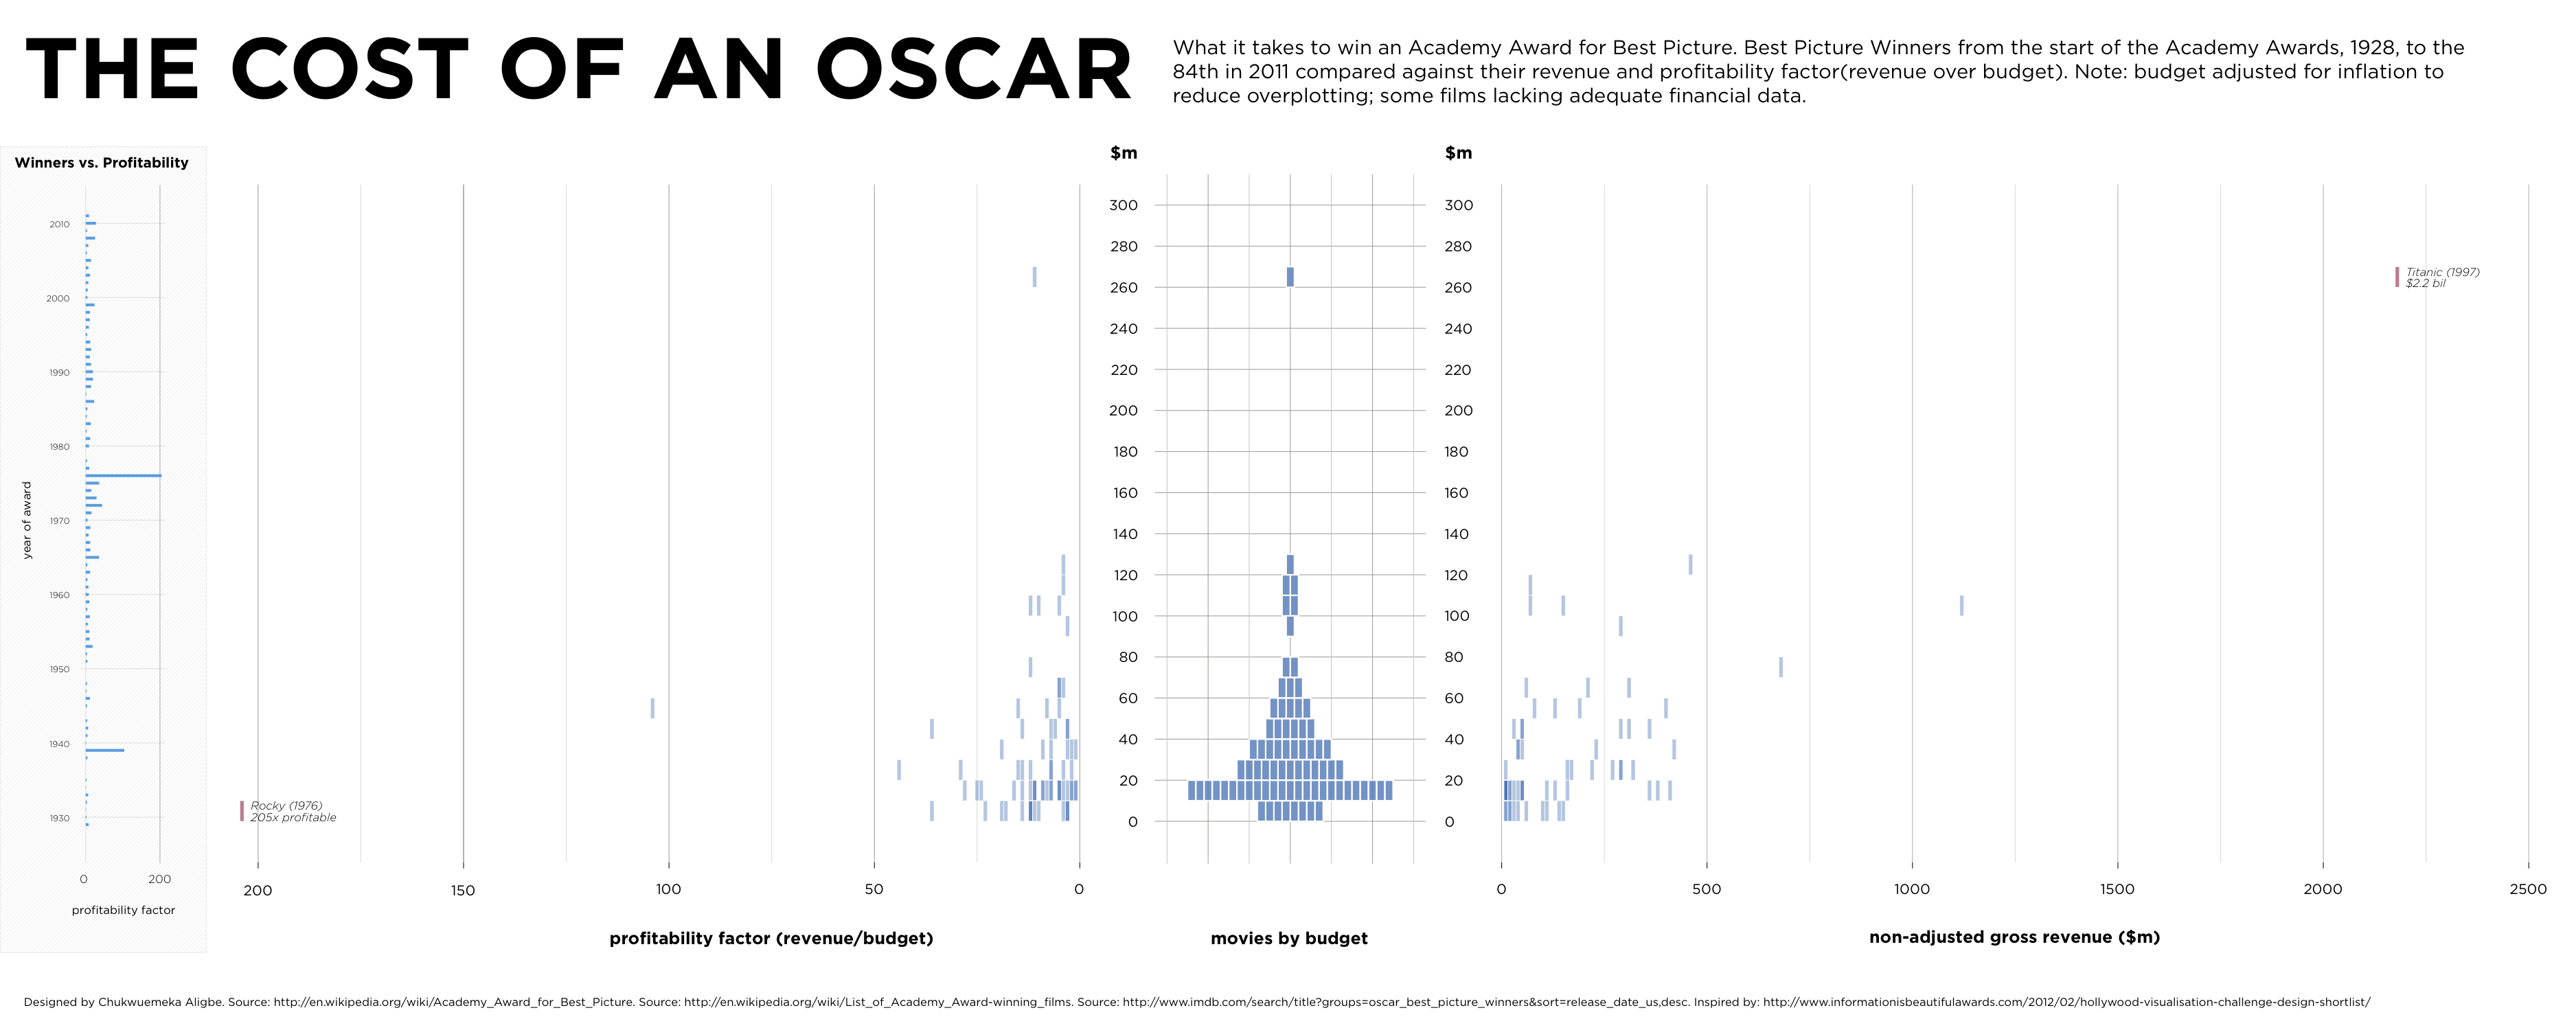 the cost of an oscar movie budget vs box office income